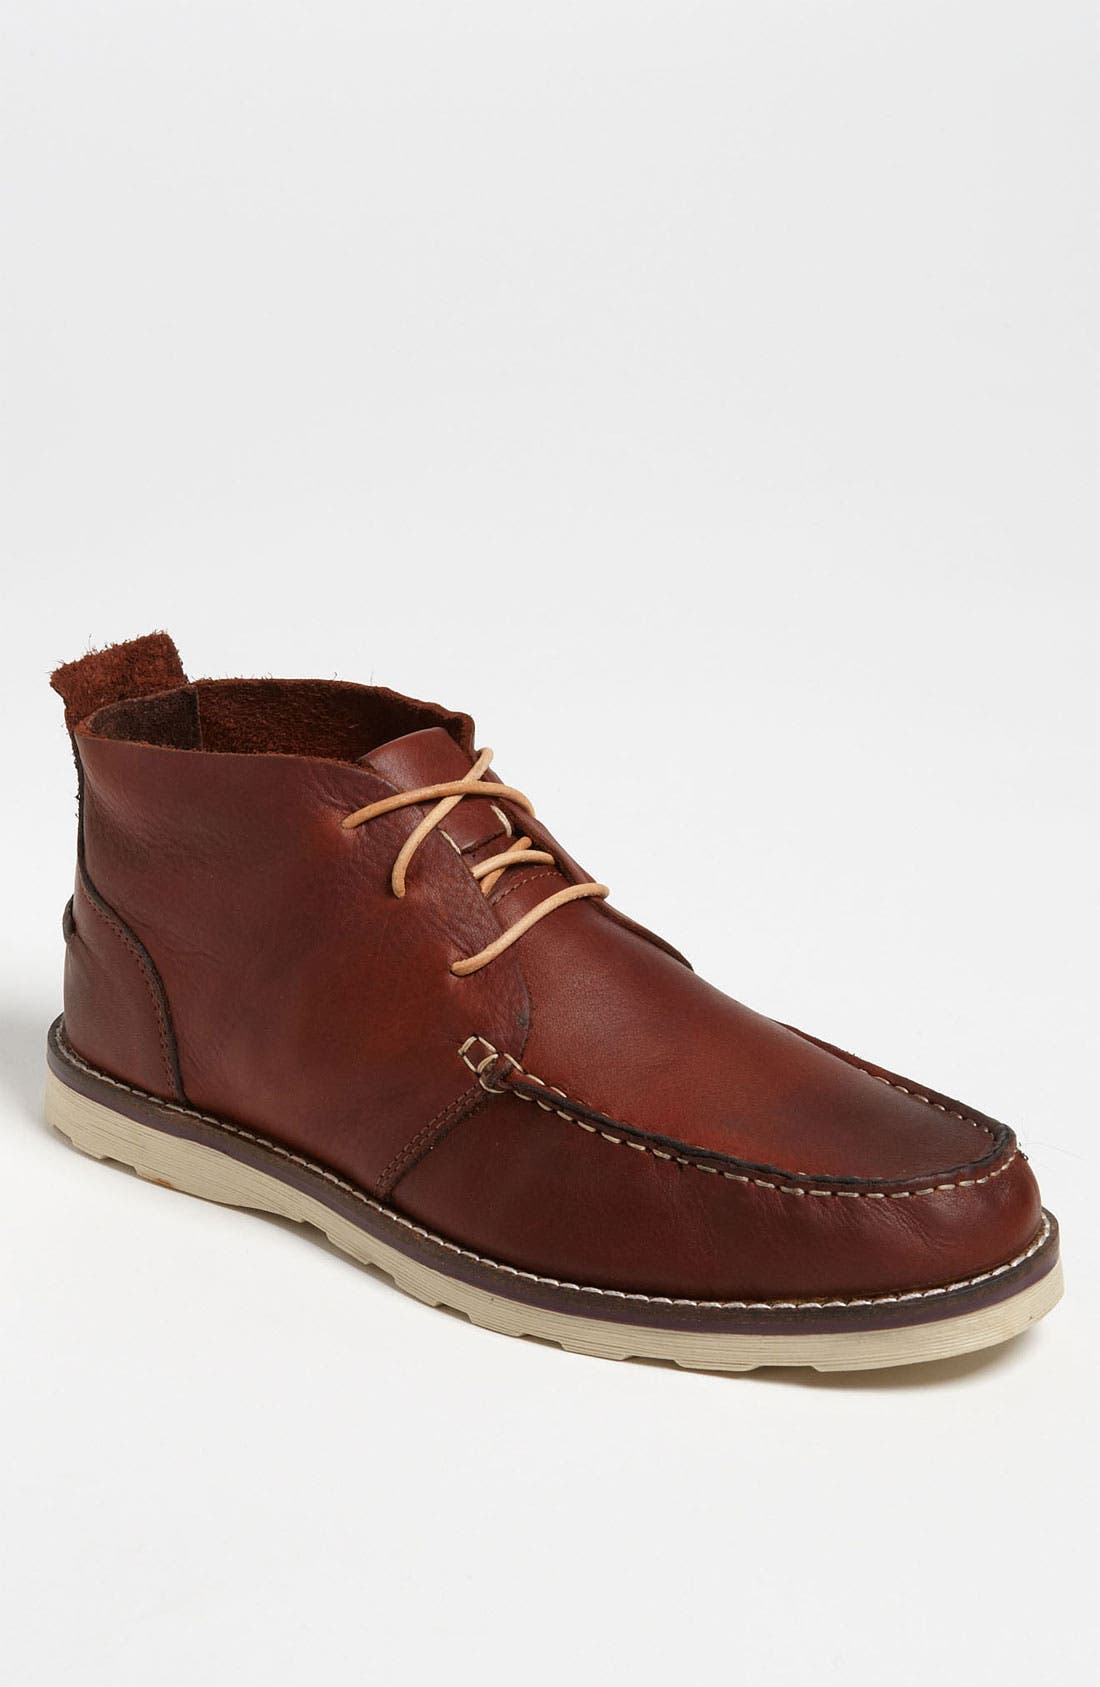 Main Image - Kenneth Cole Reaction 'Face Facts' Moc Toe Chukka Boot (Online Only)